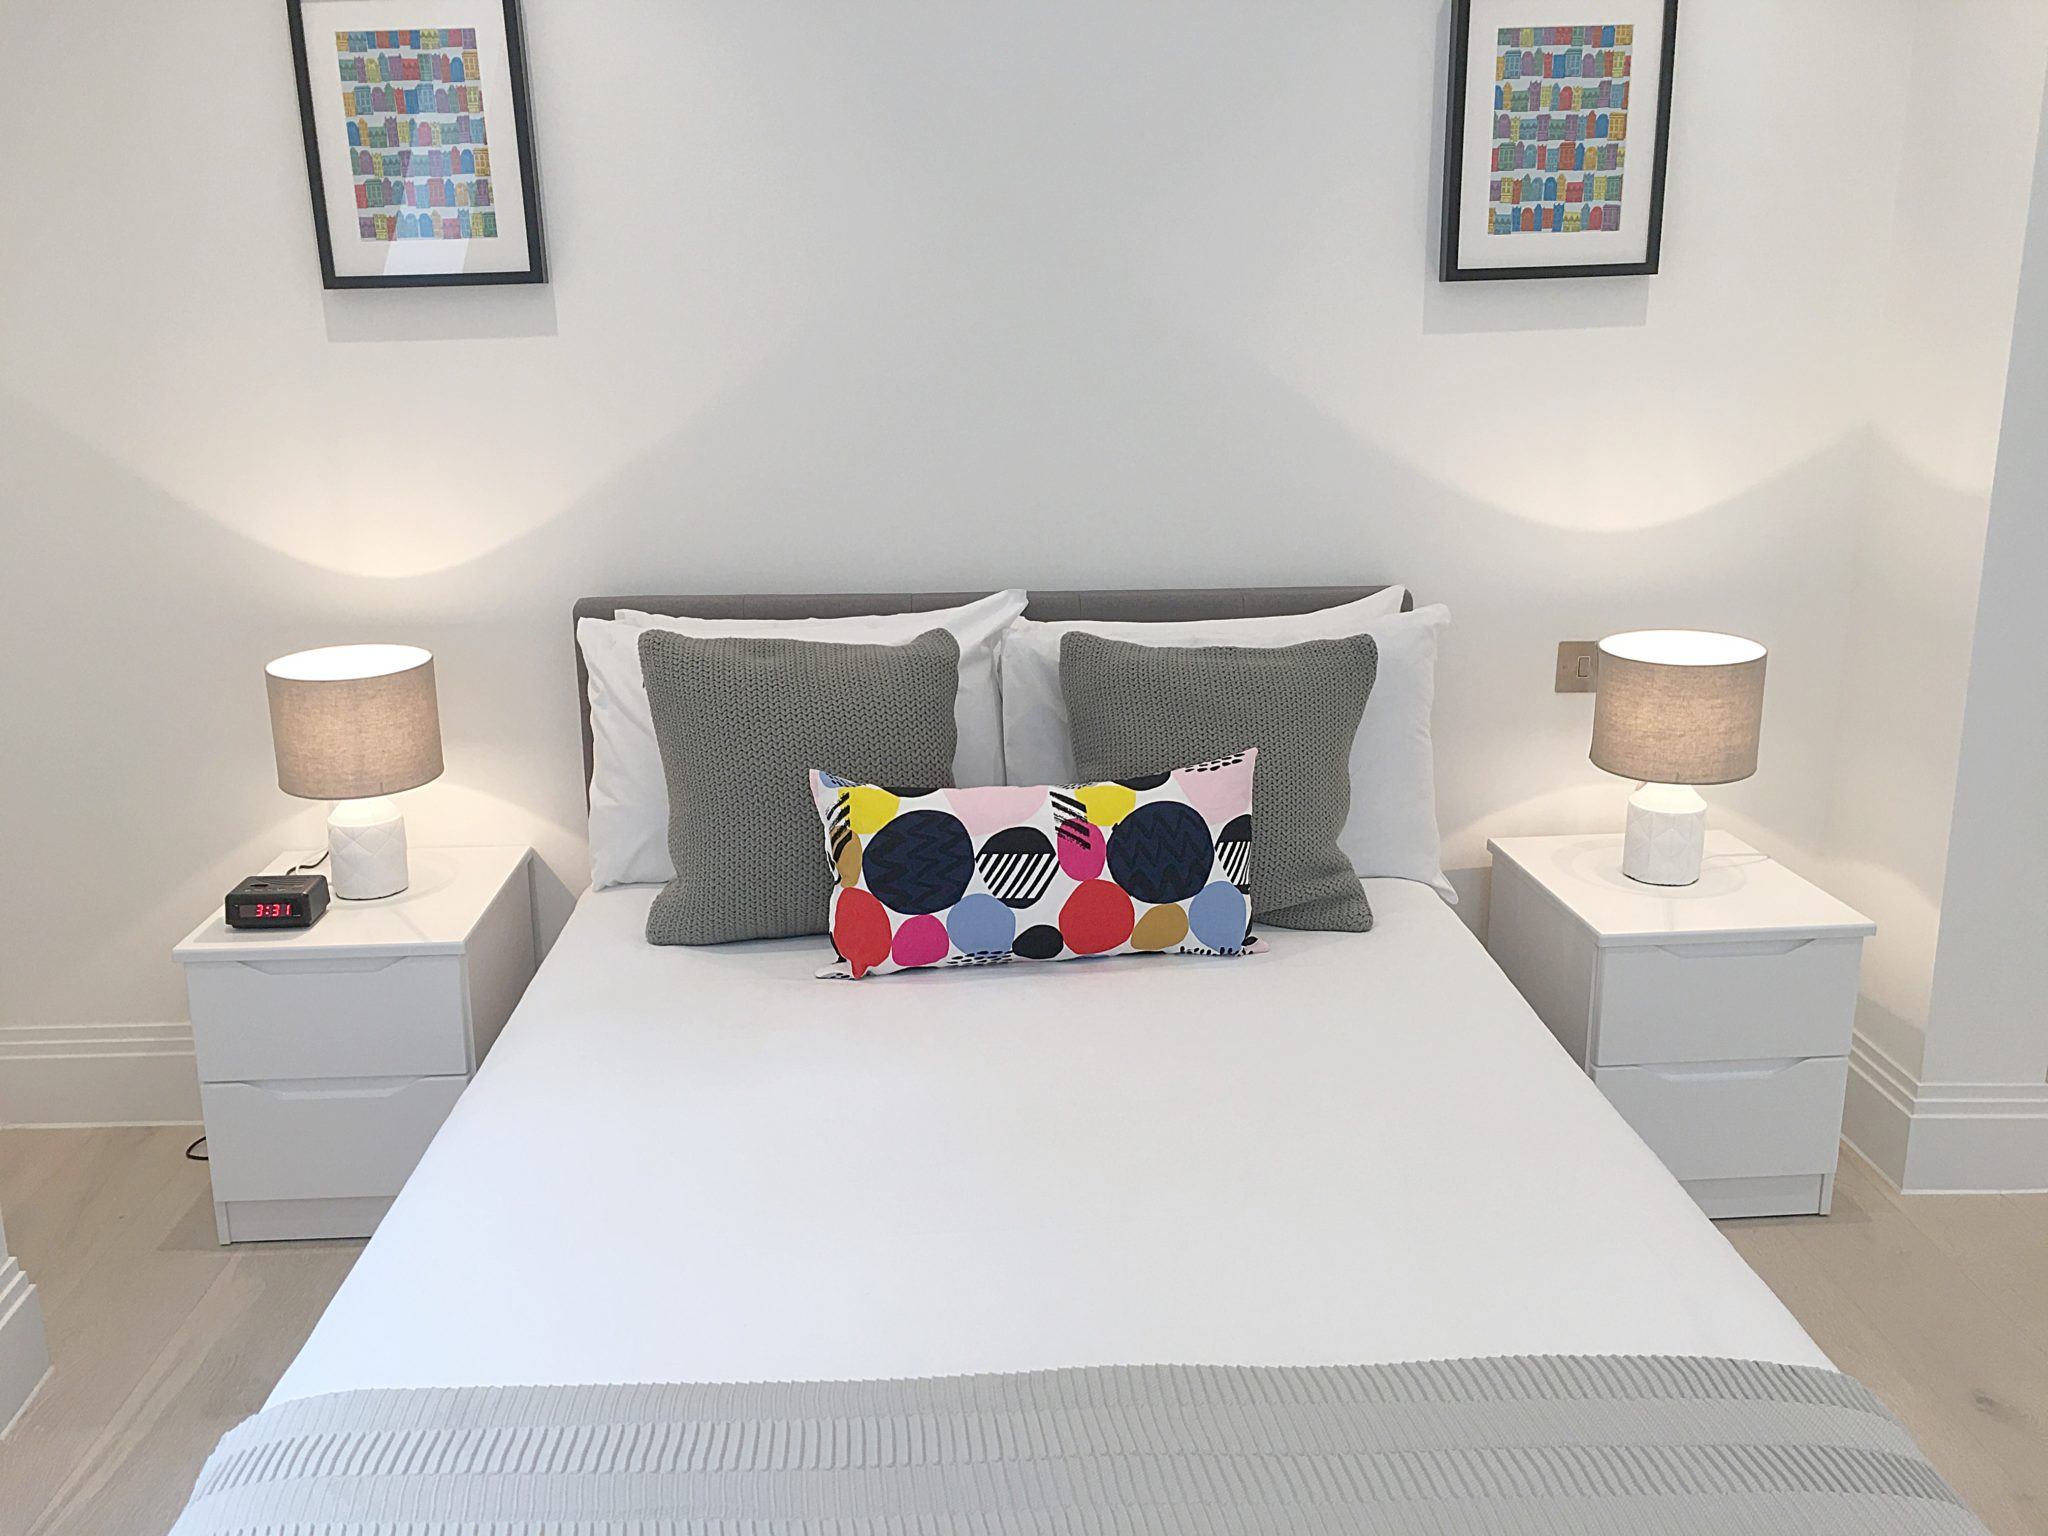 Oxford-Circus-Serviced-Apartments-London-–-Luxury-Corporate-&-Holiday-Accommodation-Oxford-Street,-Central-London-|-Urban-Stay